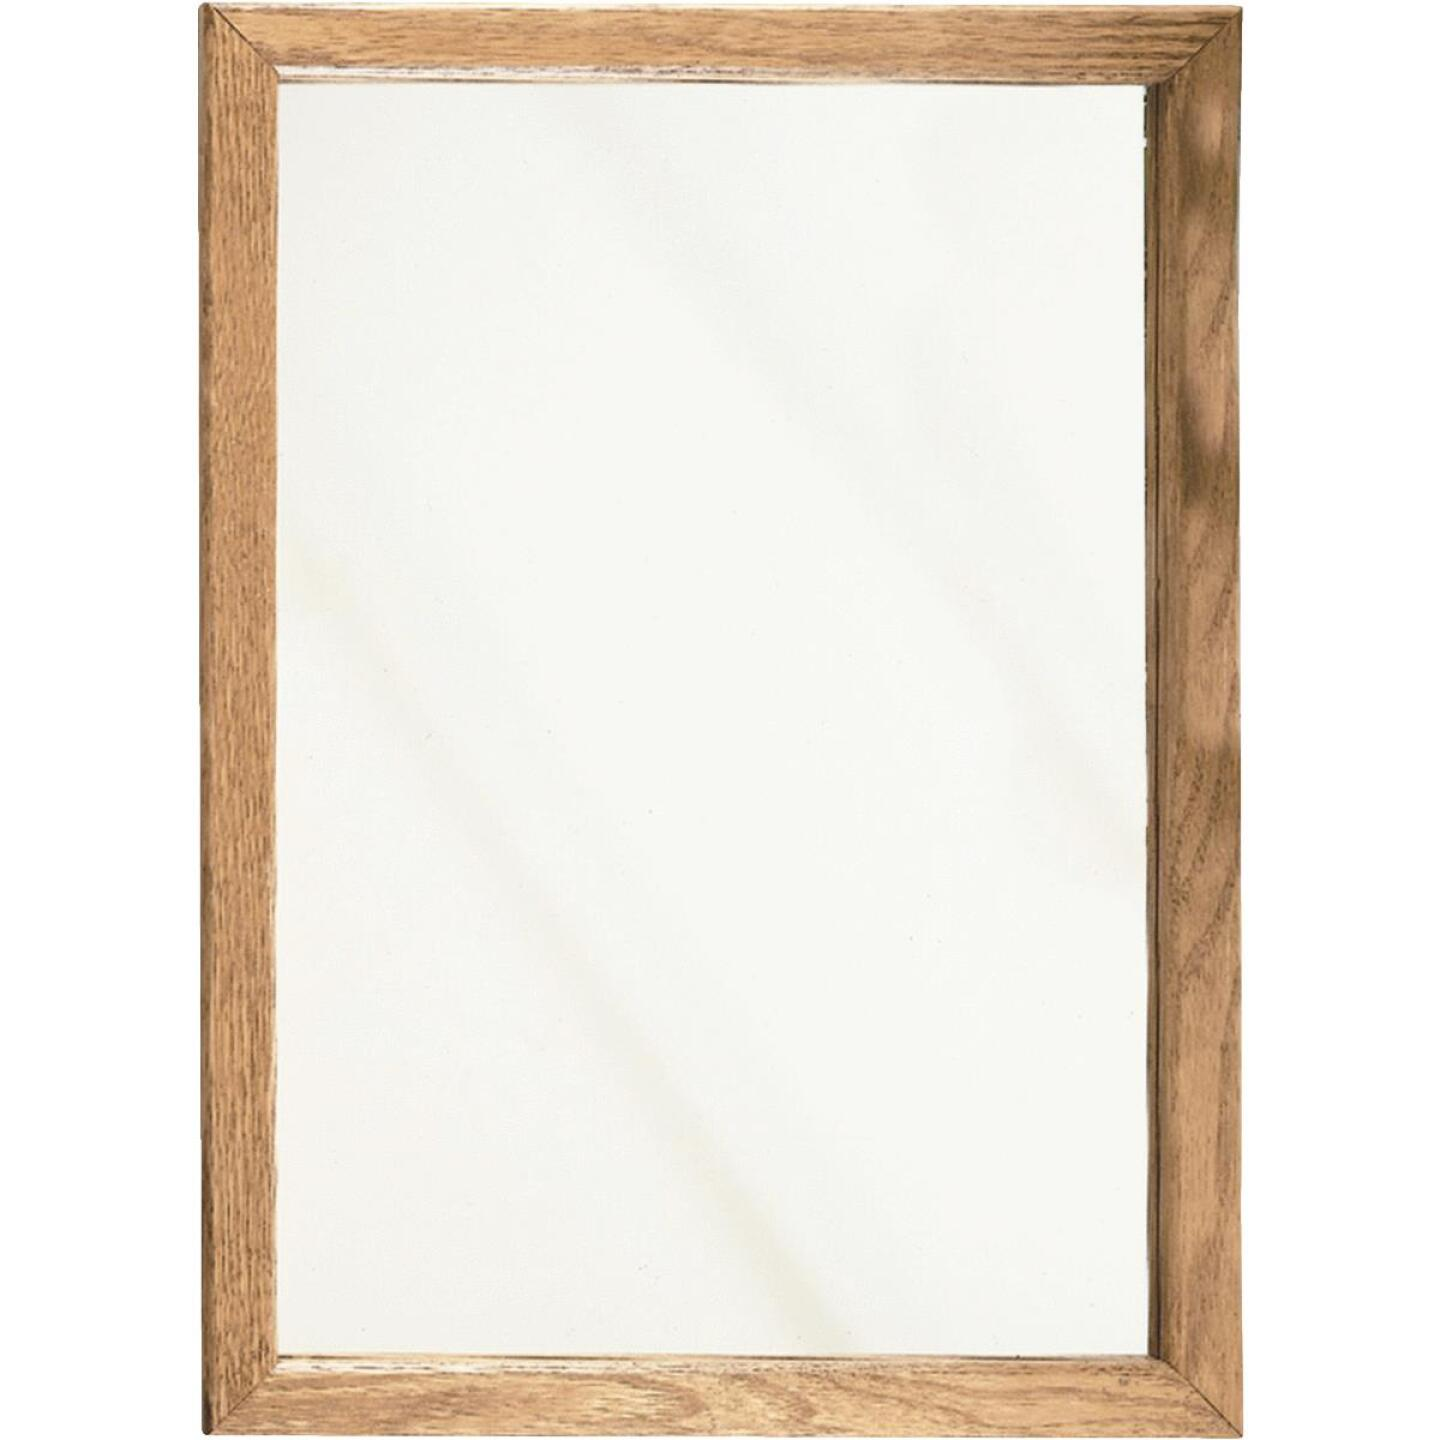 Zenith Oak 16 In. W x 22 In. H x 4-1/2 In. D Single Mirror Surface/Recess Mount Framed Medicine Cabinet Image 1